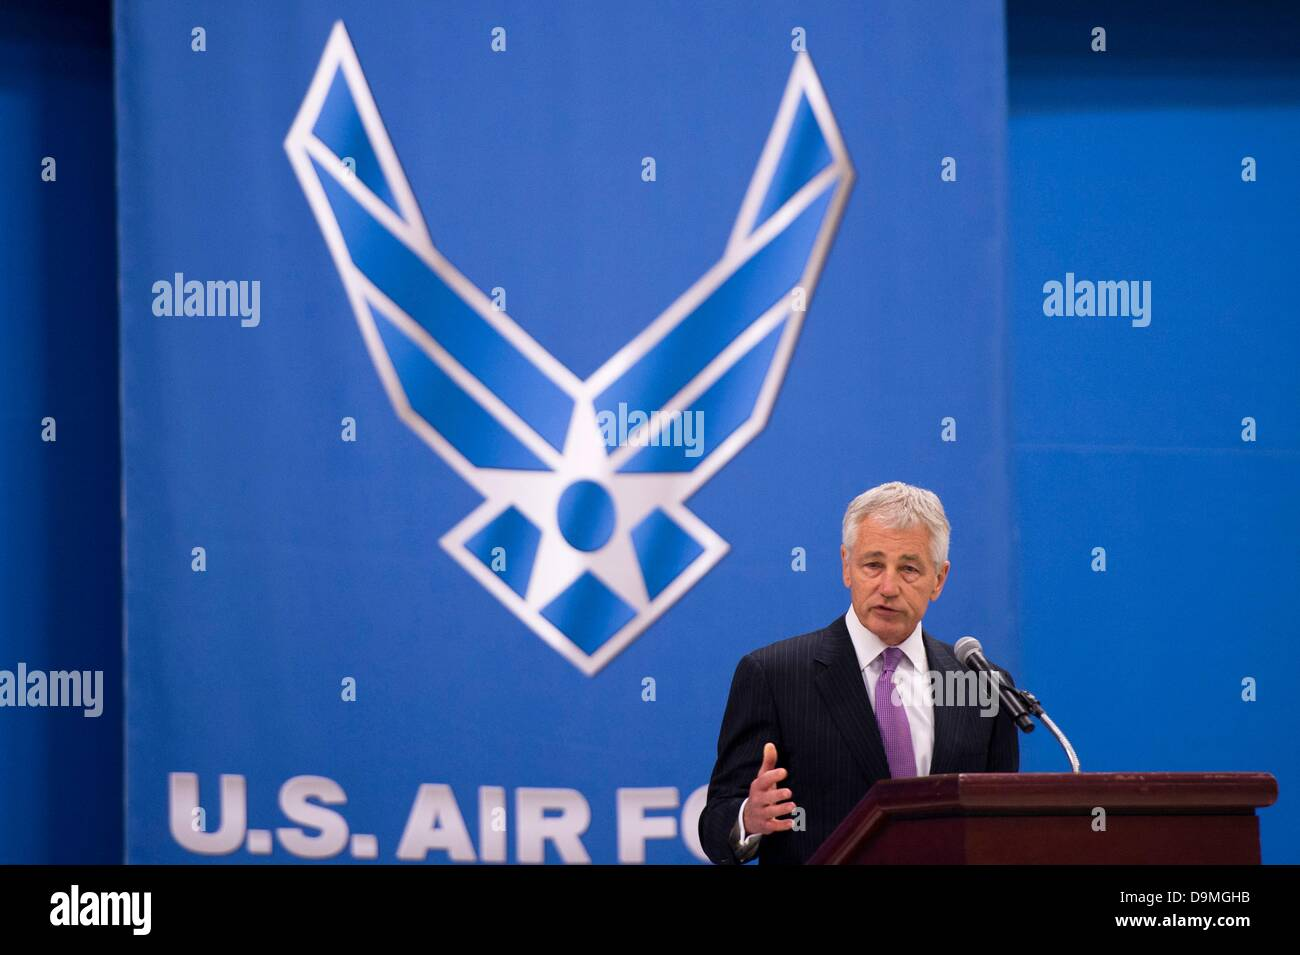 Maryland, US. 21 June 2013. US Secretary of Defense Chuck Hagel speaks at the farewell ceremony for Secretary of - Stock Image